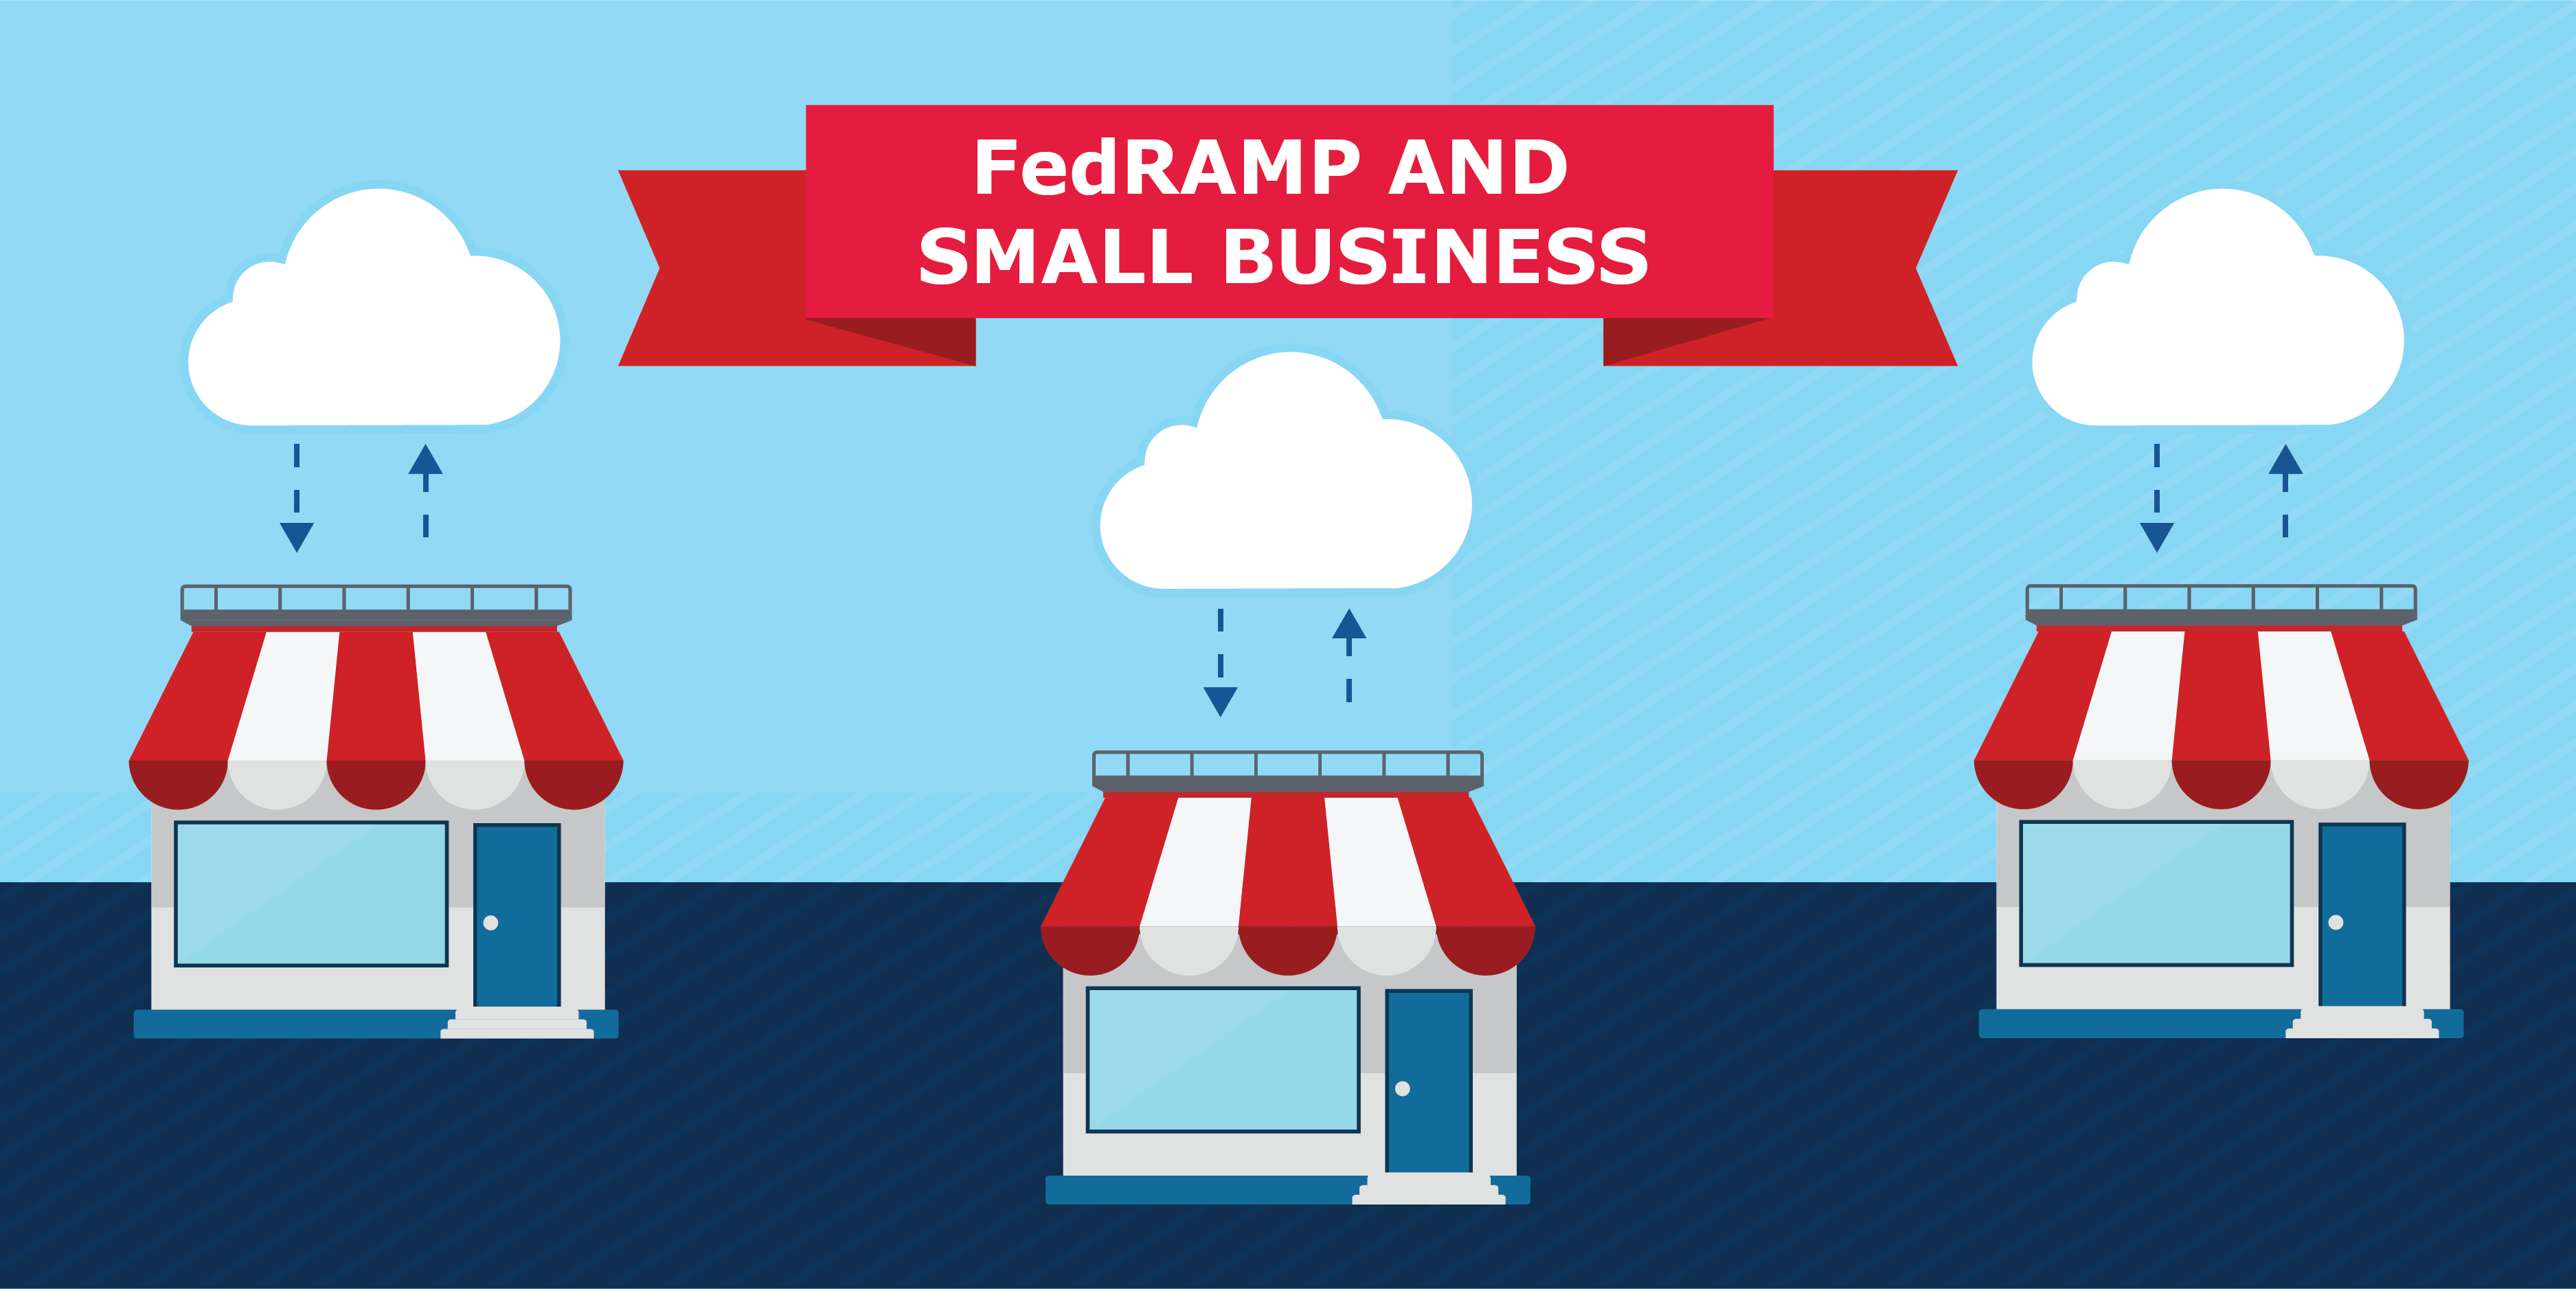 Impact of FedRAMP for Small Businesses